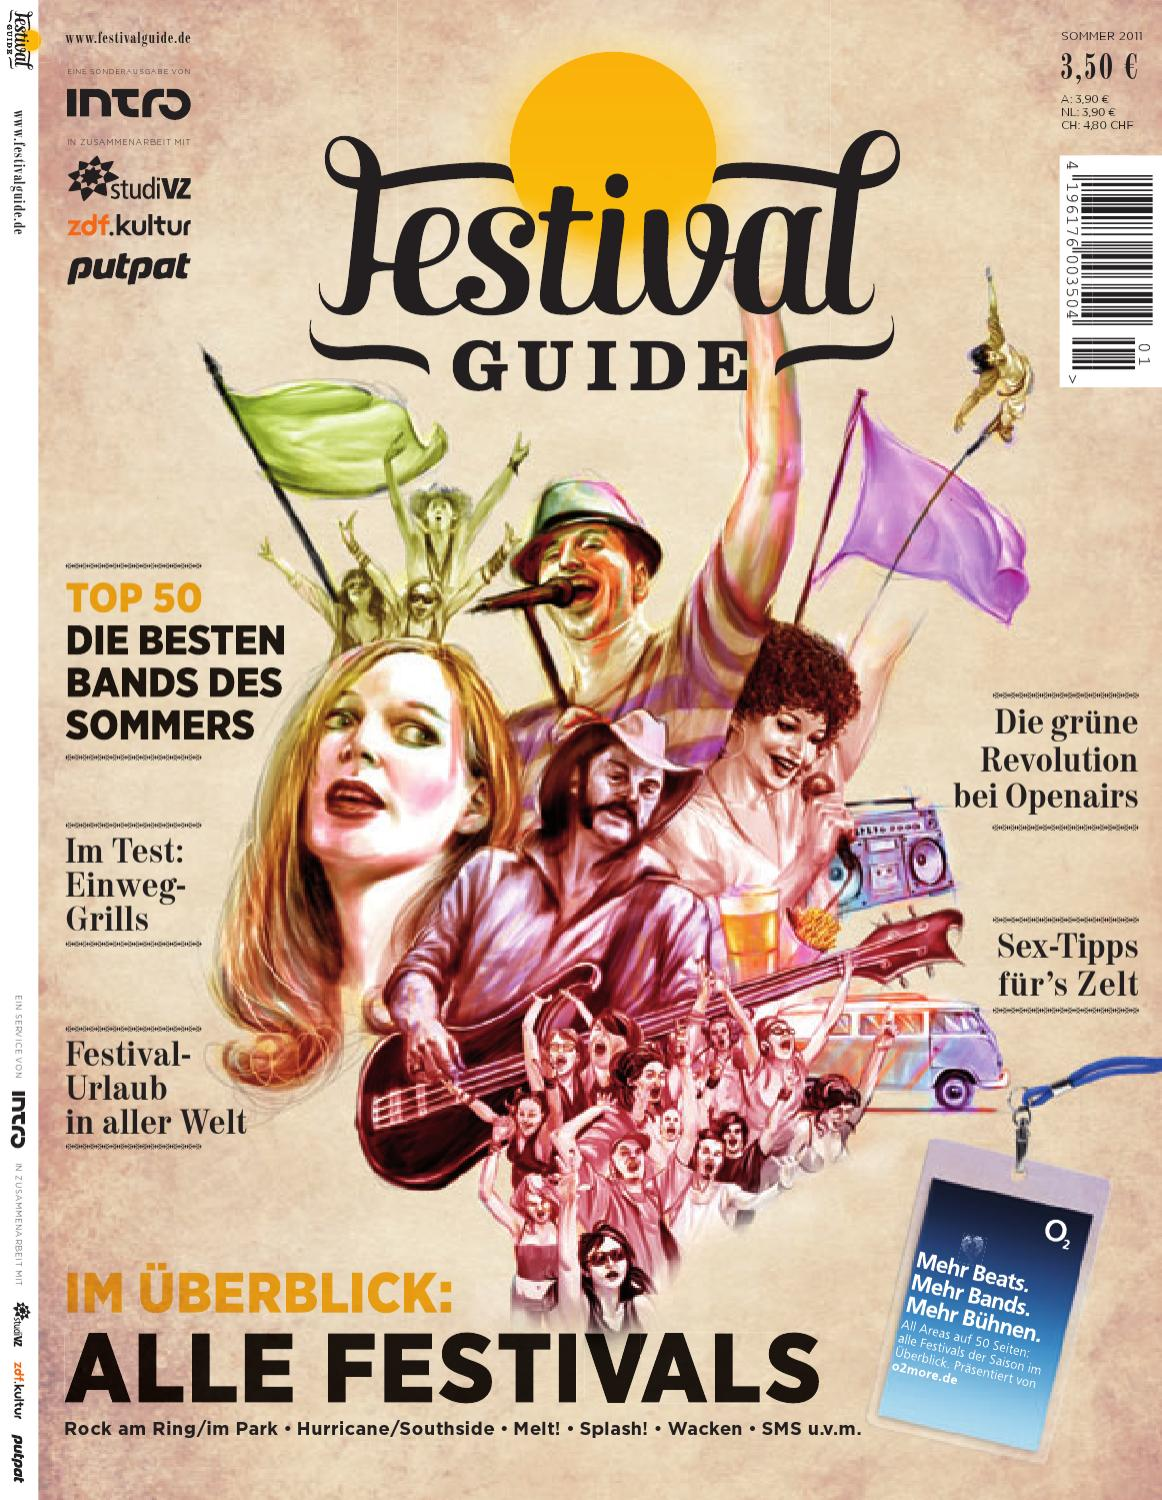 Festivalguide 2011 by Intro GmbH und Co. KG issuu